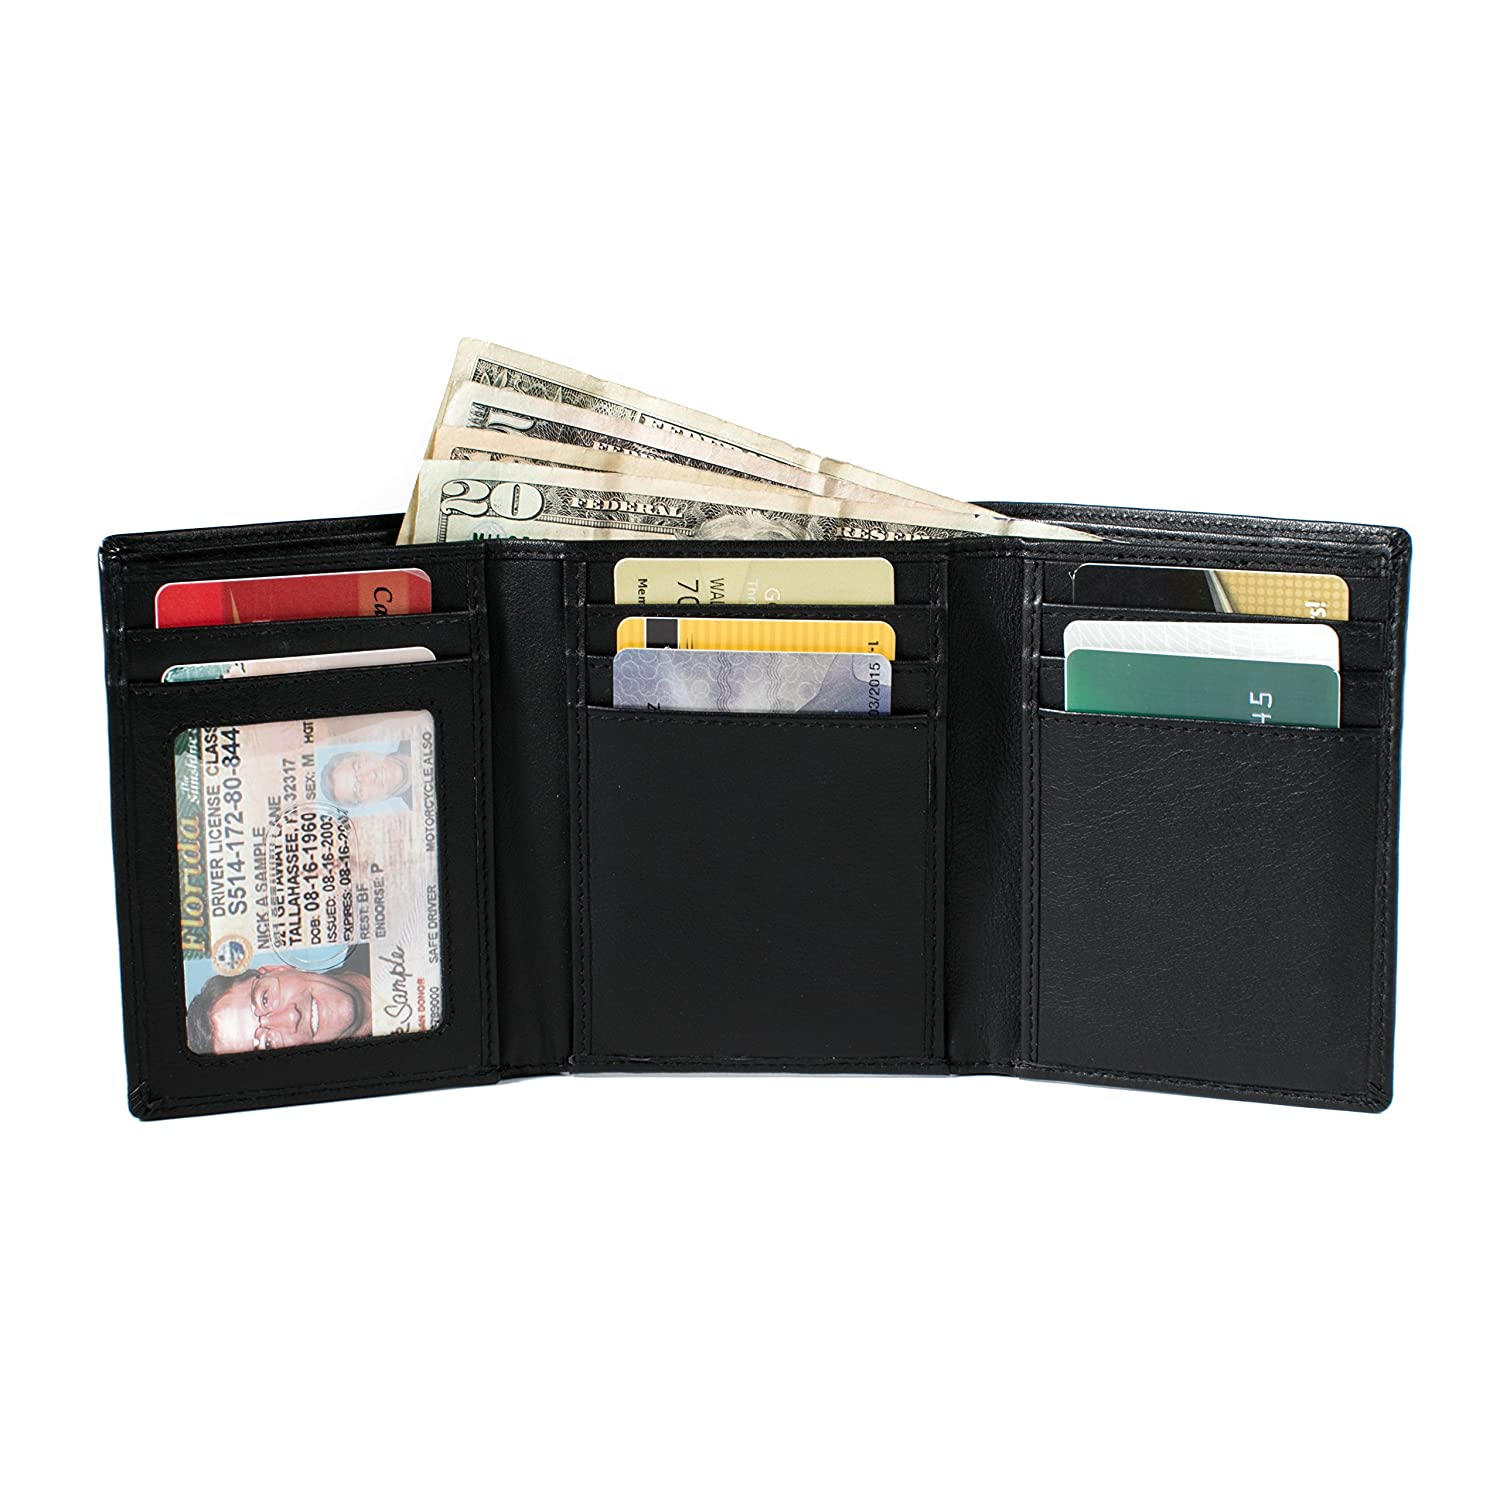 Trifold 8 Slot RFID Wallet with ID Slot - Black ID Stronghold 7003-ID